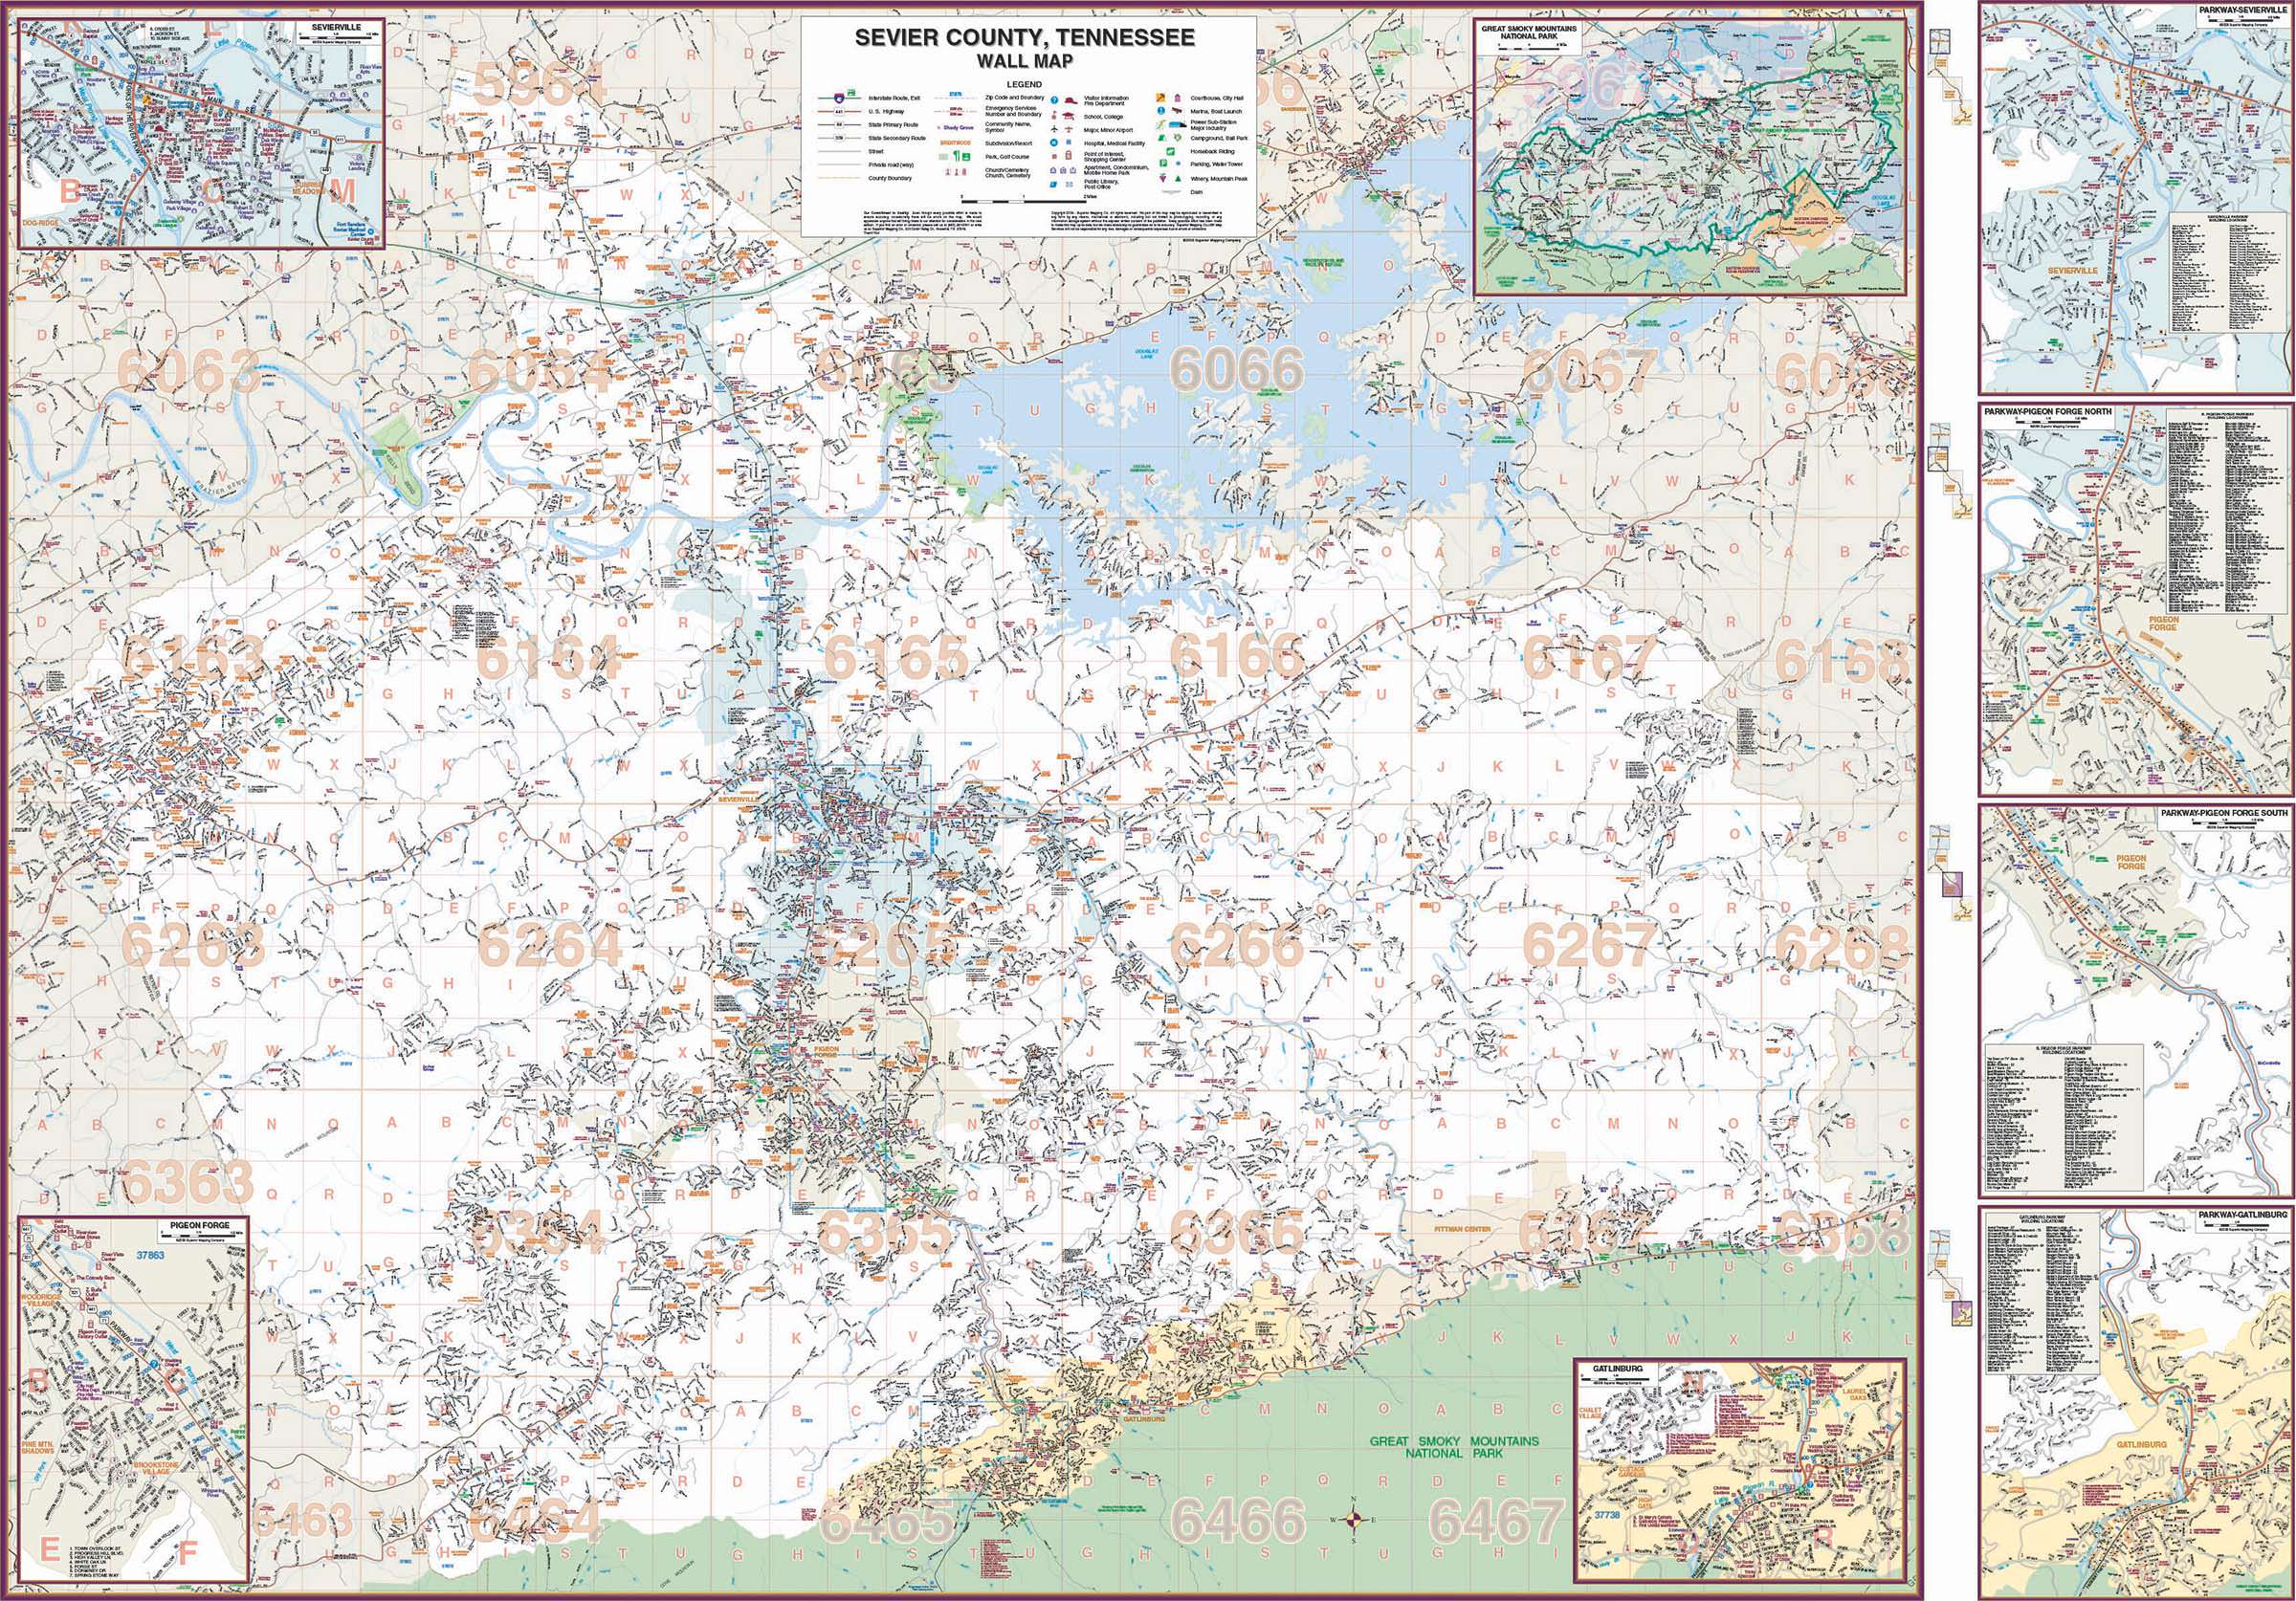 sevier county fire map Sevier County Tn Wall Map Kappa Map Group